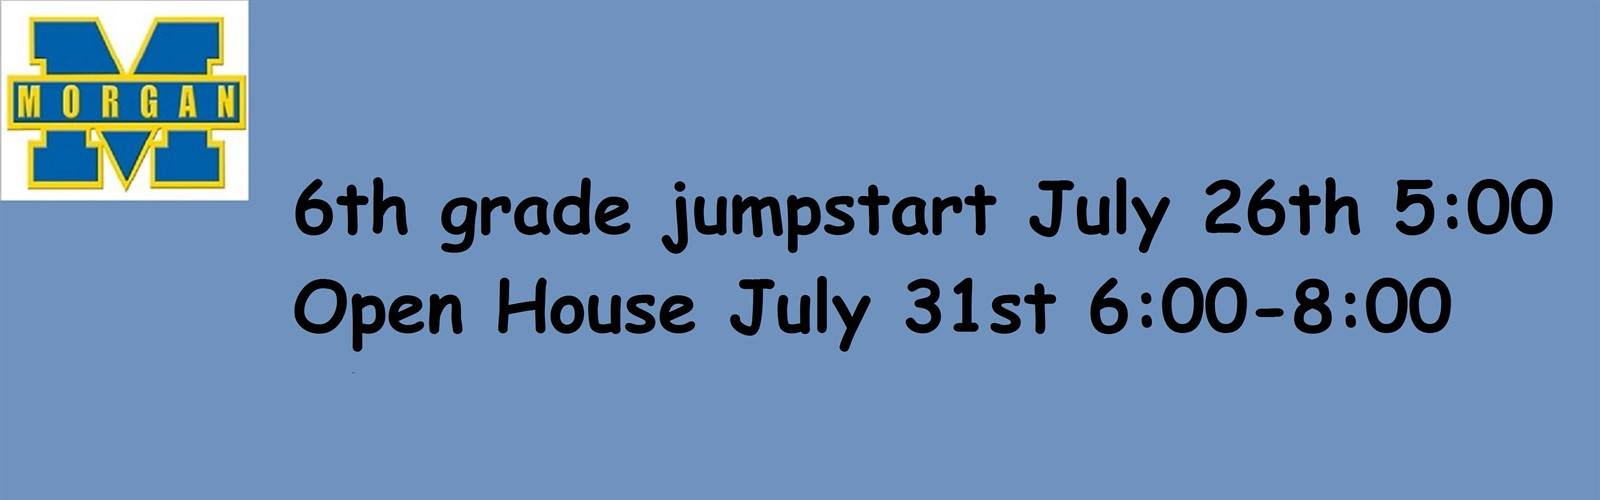 6th grade jumpstart July 26th 5:00 Open House July 31st 6:00-8:00